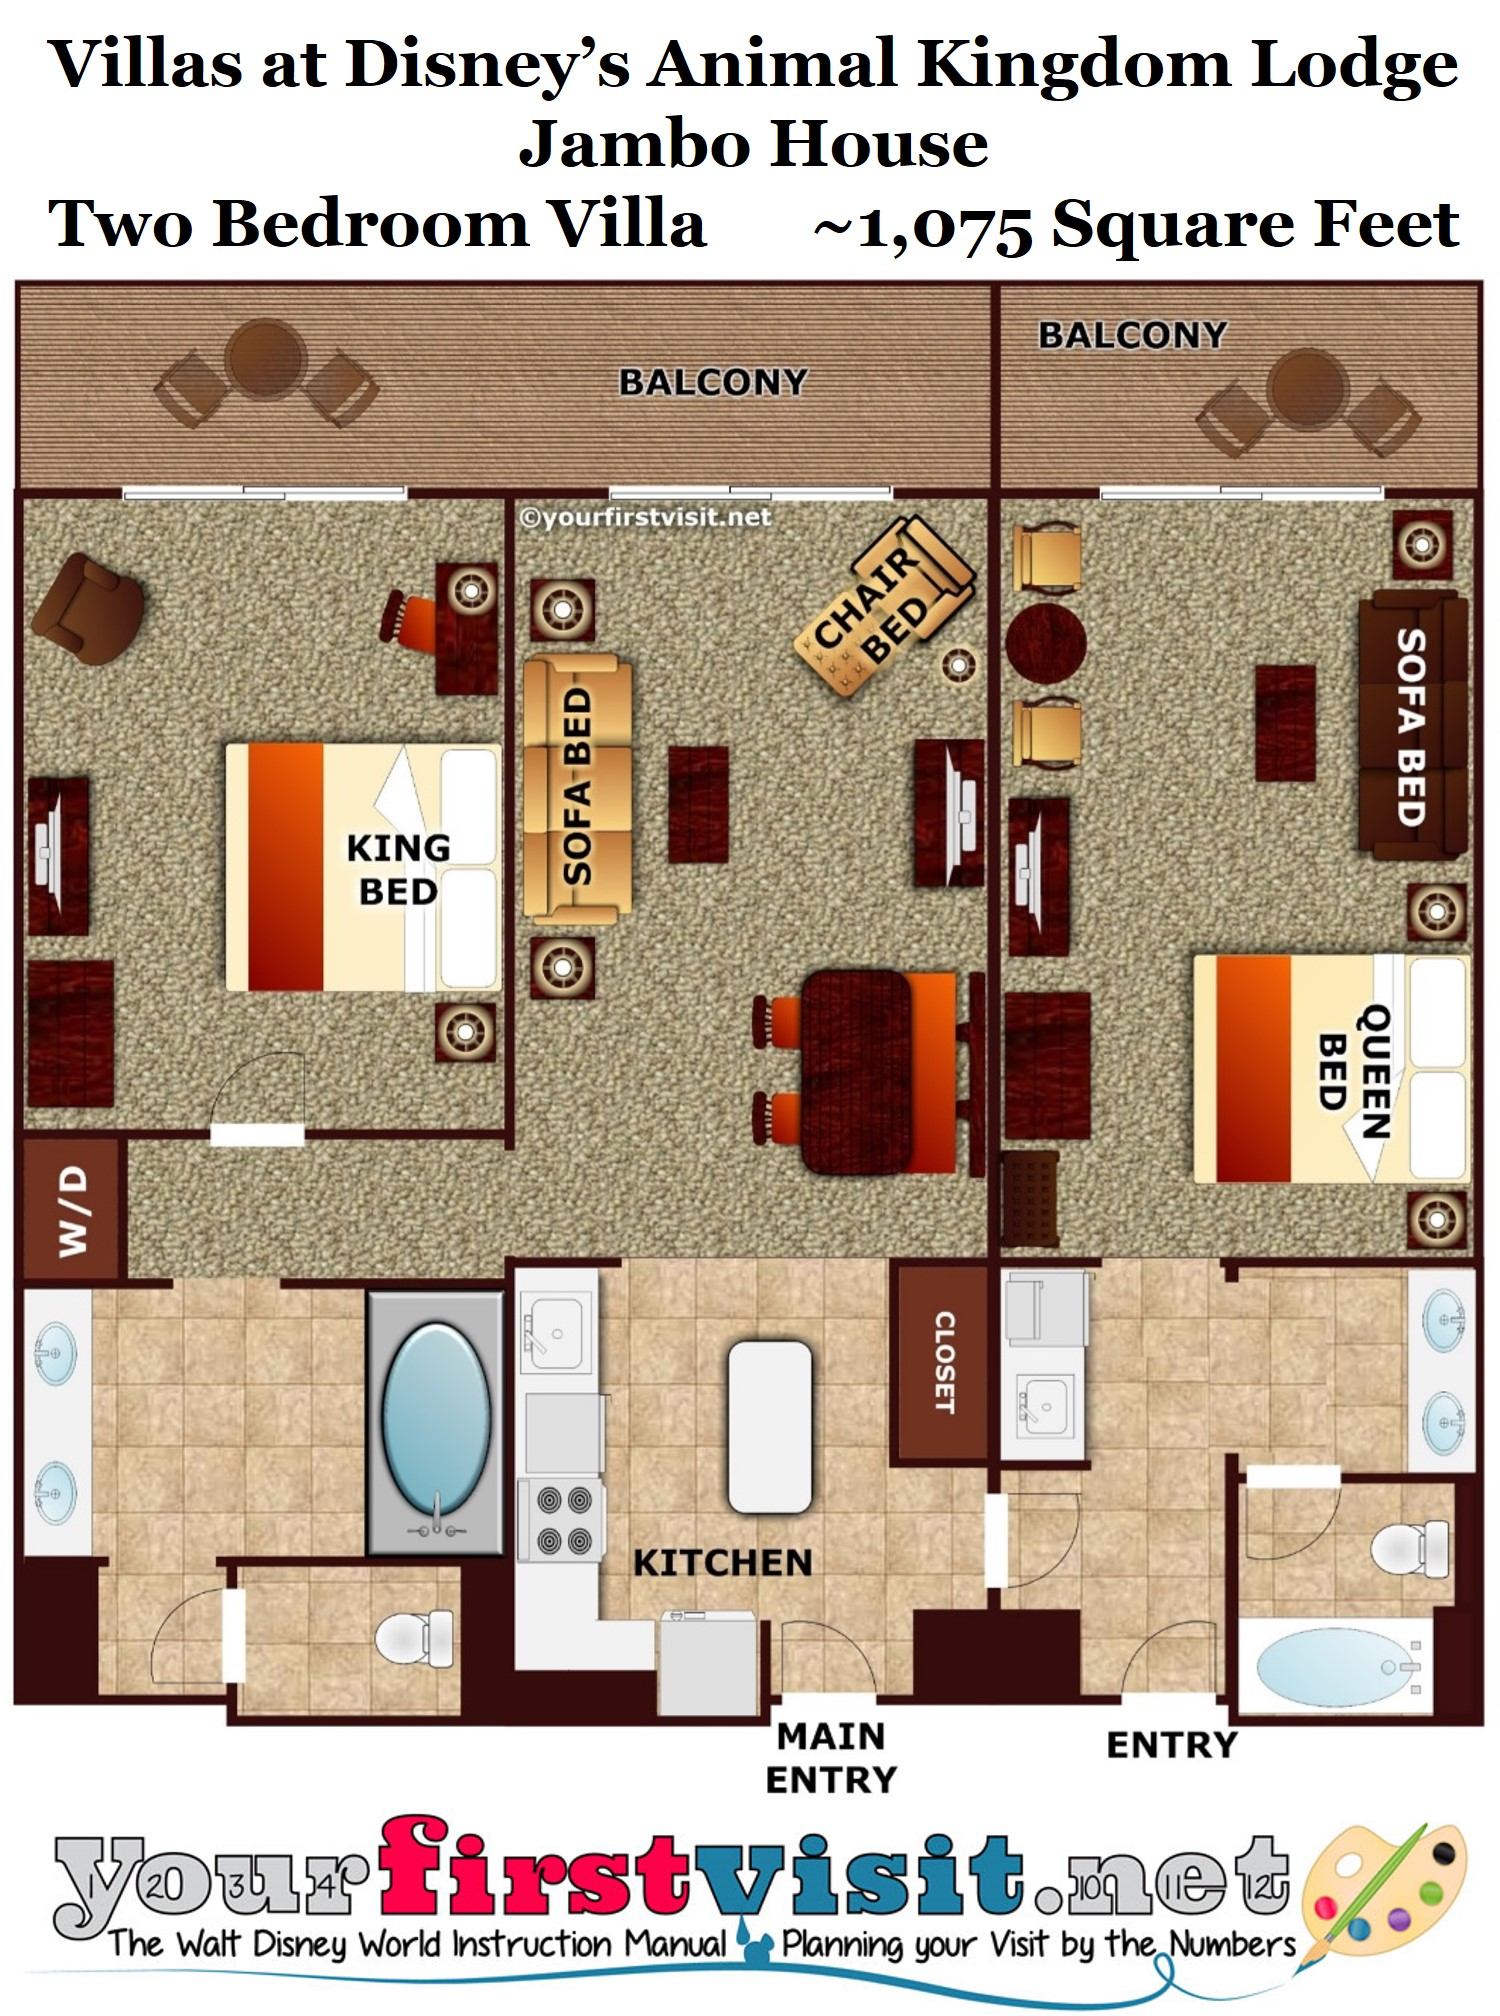 Photo tour one bedroom villa bath master bedroom space - 2 bedroom villas near disney world ...